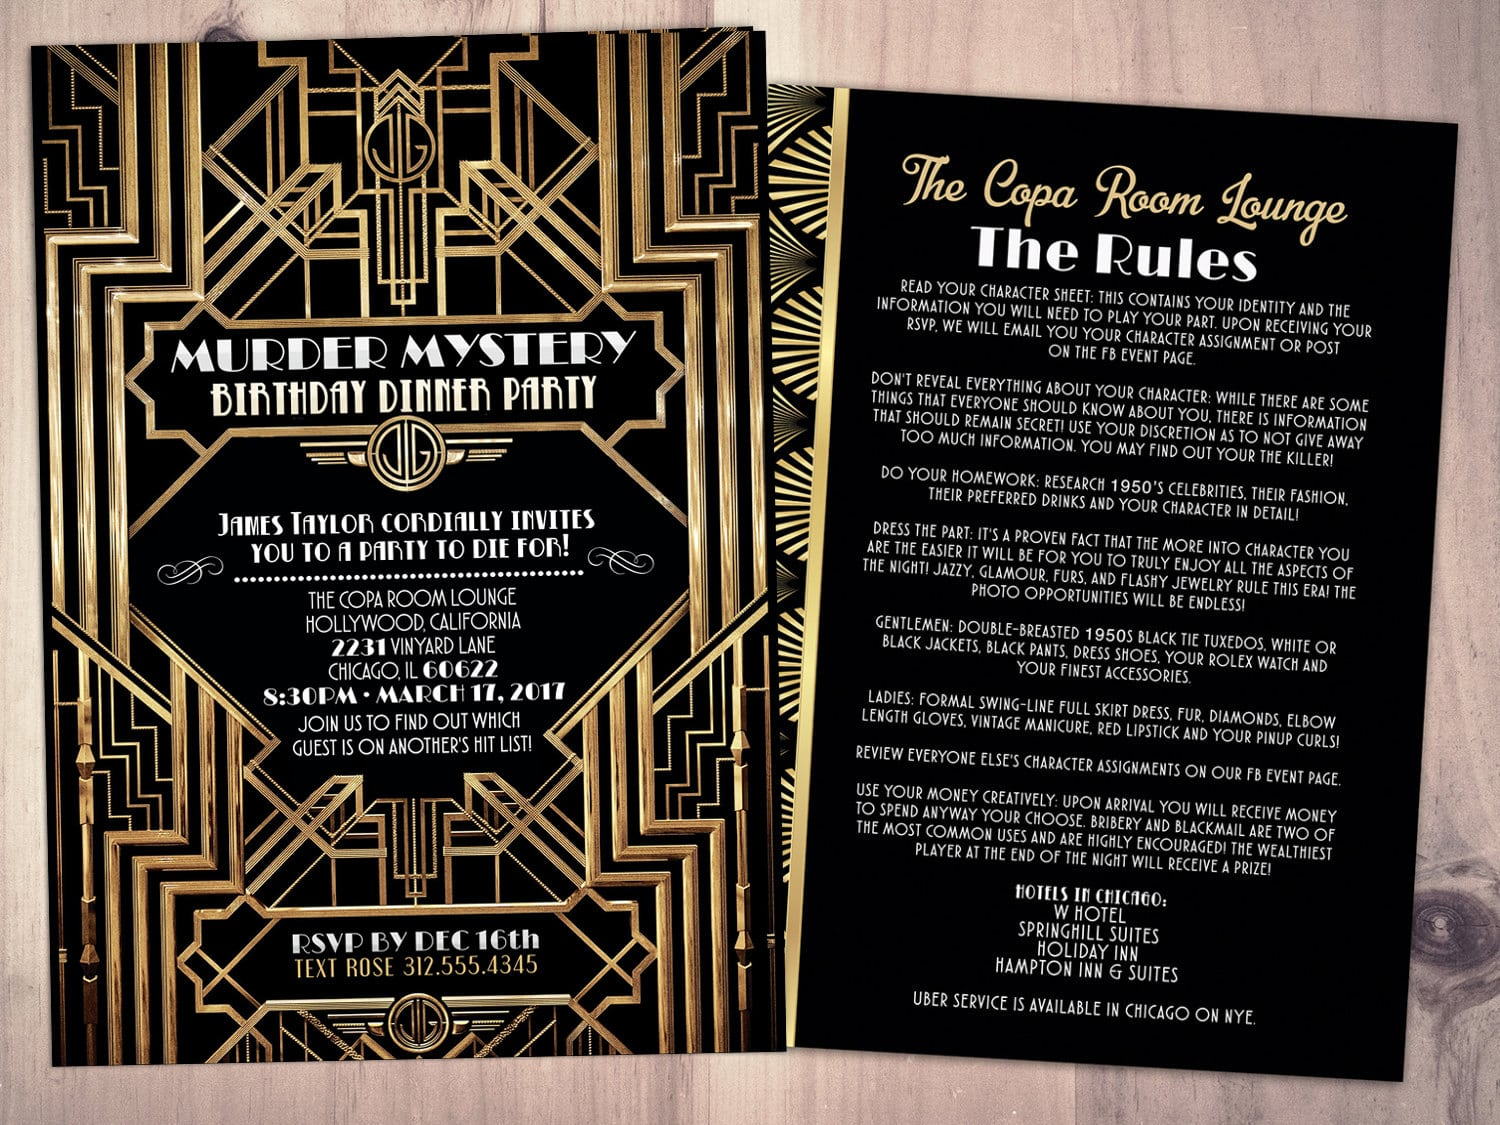 Murder Mystery Dinner Party Invitation, Vintage Party Invitation